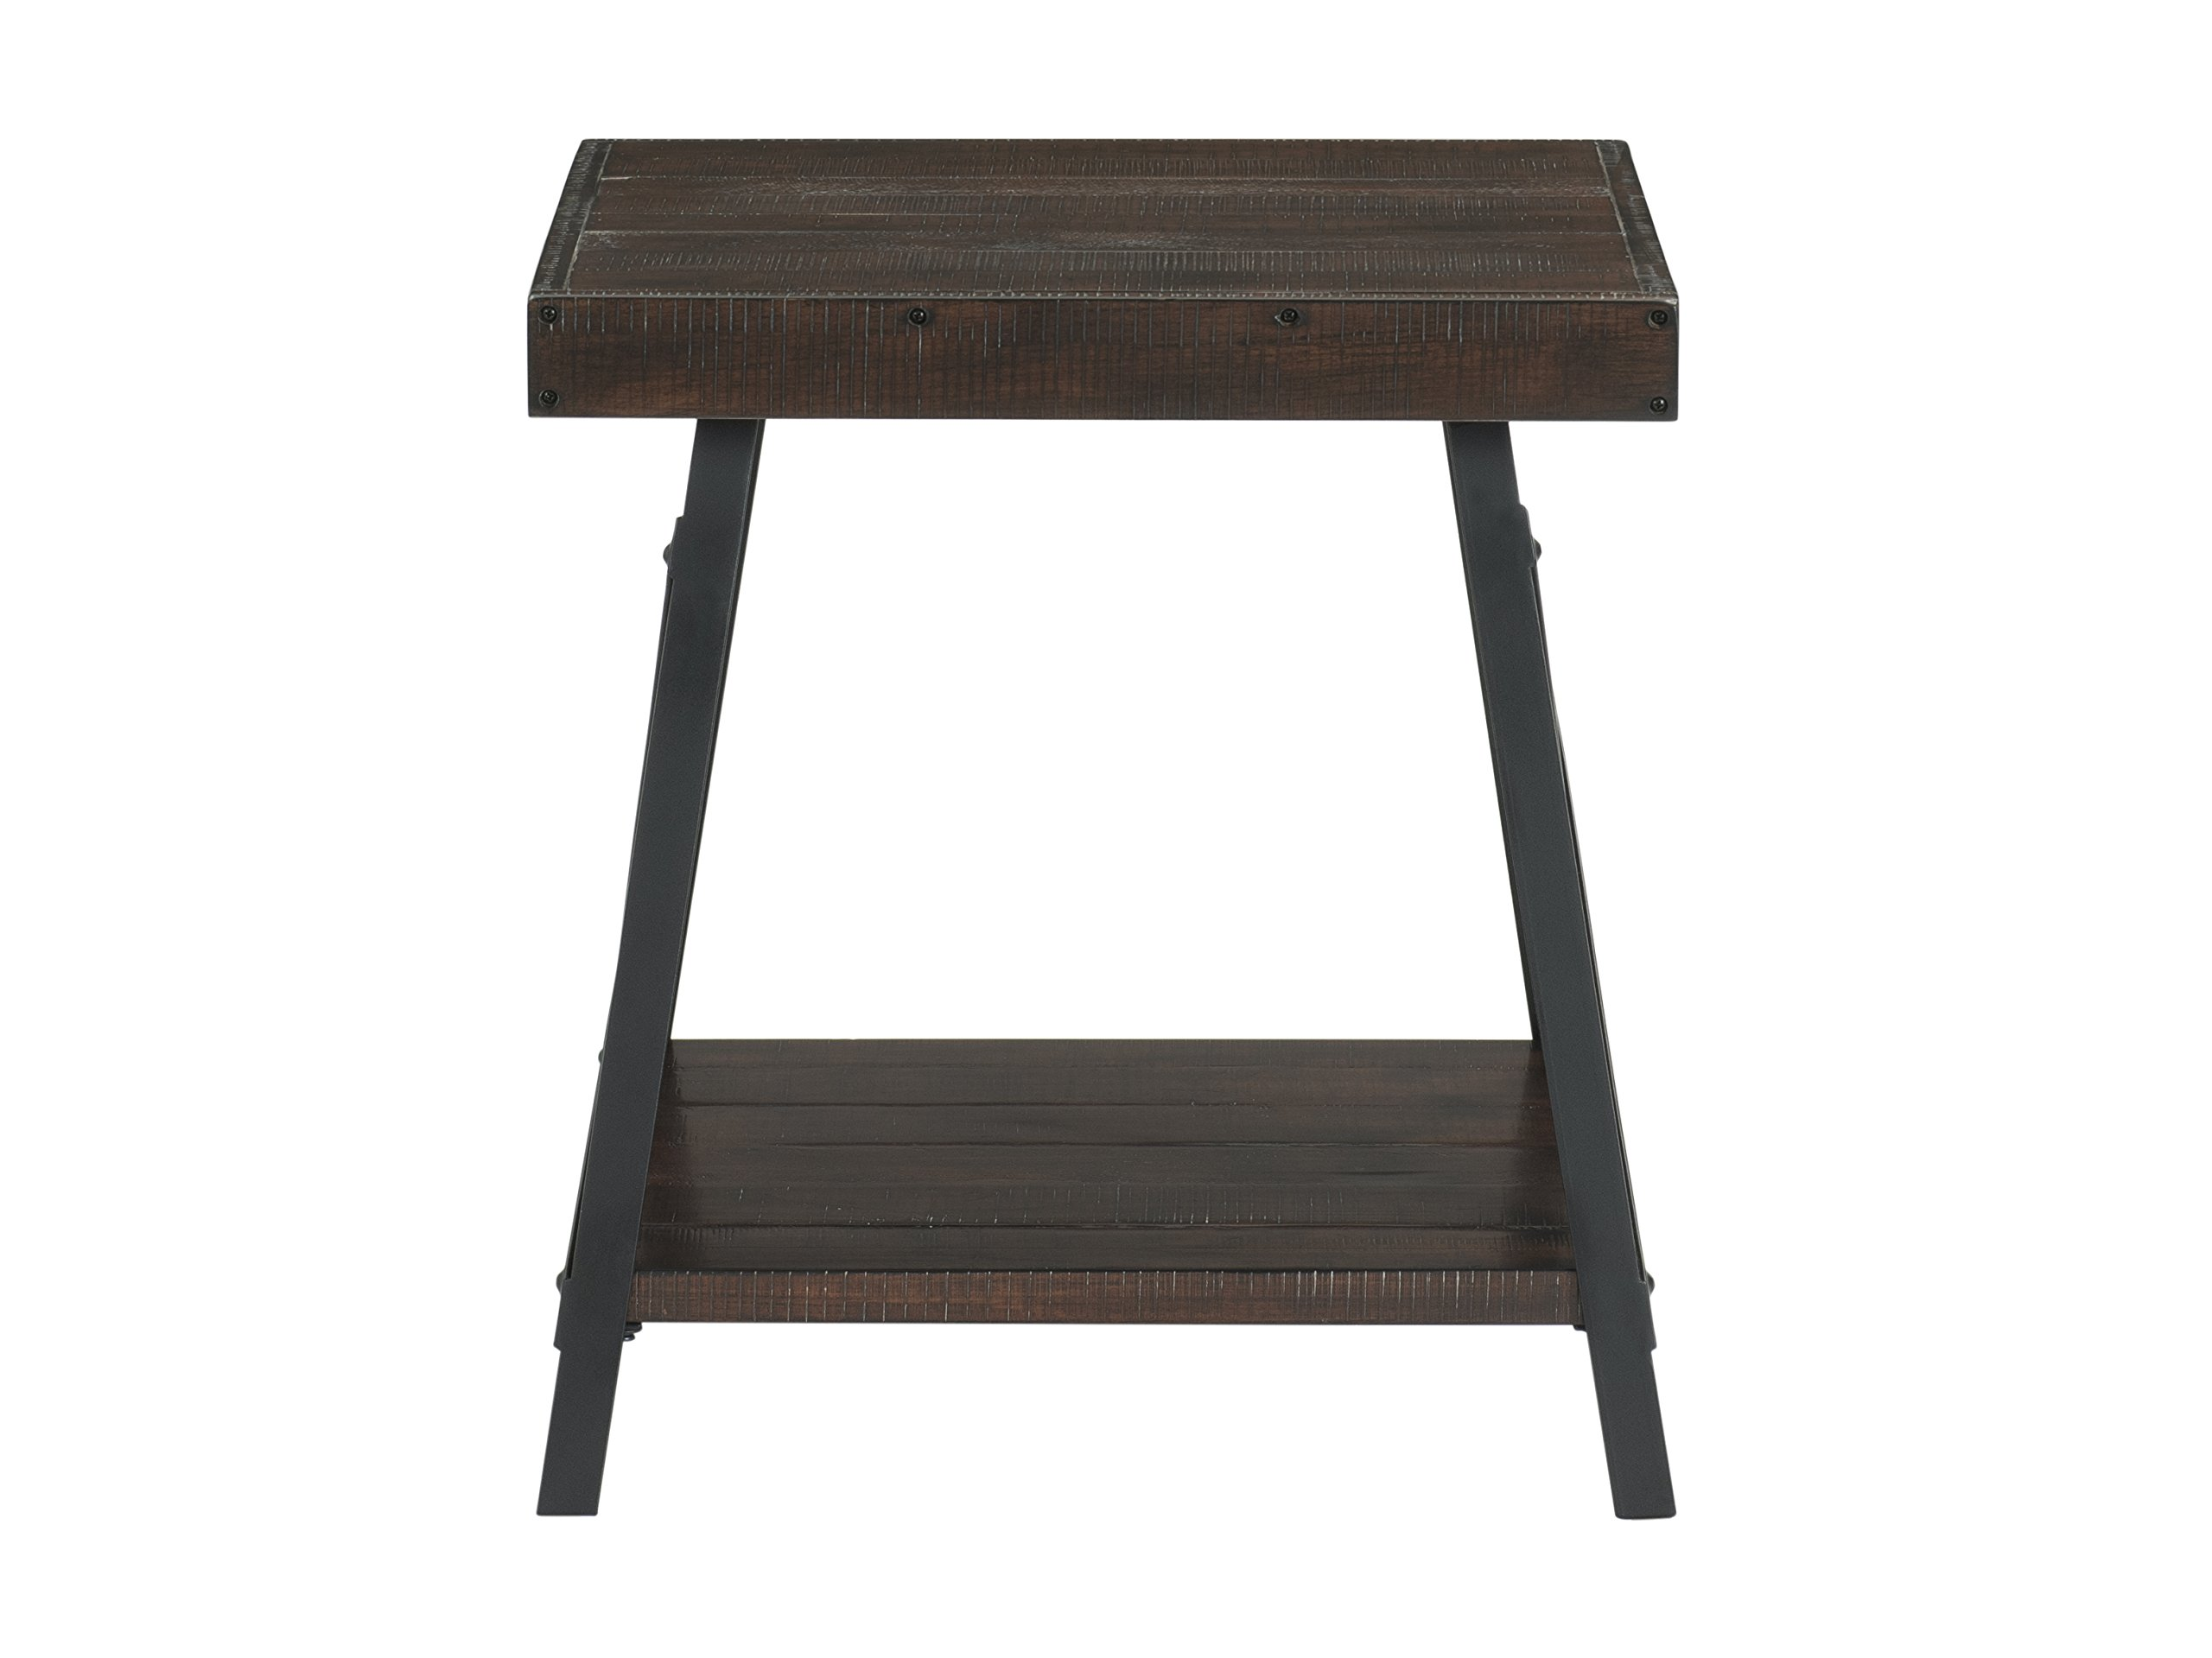 """Martin Svensson Home Xavier End Table, Sumatra - Finish: Sumatra - blend of a deep rich Coffee Finish with a slight amount of white pumice hang up Crafted from solid wood - New Zealand pine with rough hewn saw marks Exposed rivets across the Top and Black Steel metal """"x"""" cross on the end caps give it a distinct industrial and rustic look - living-room-furniture, living-room, end-tables - 71PqMPA2hhL -"""